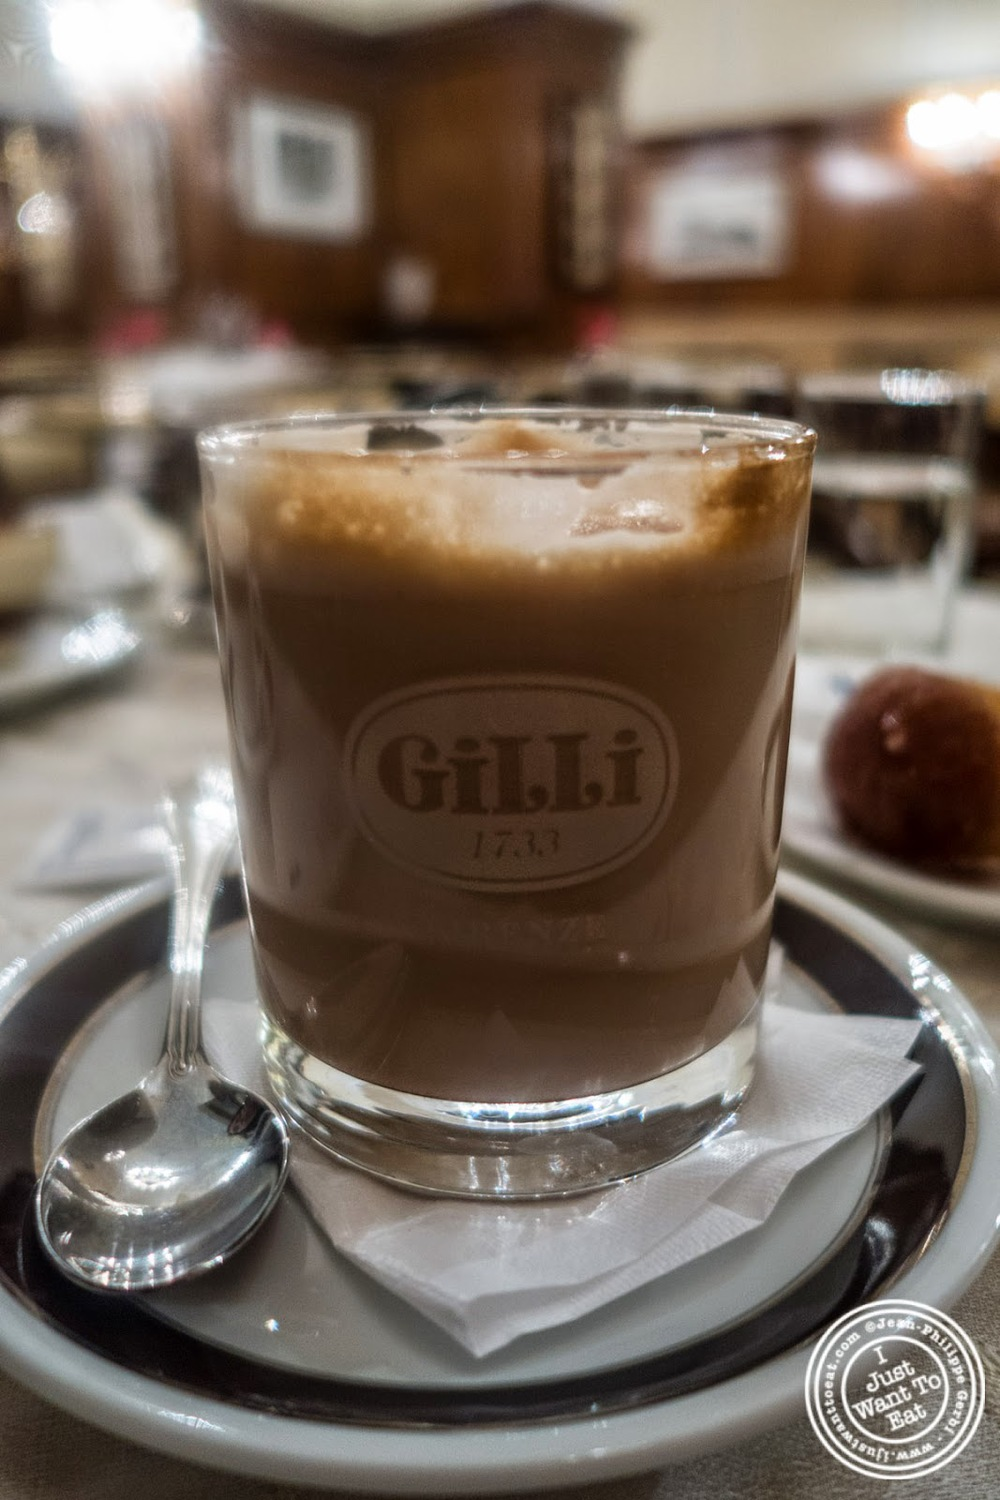 image of latte macchiato at Caffè Gilli in Florence, Italy